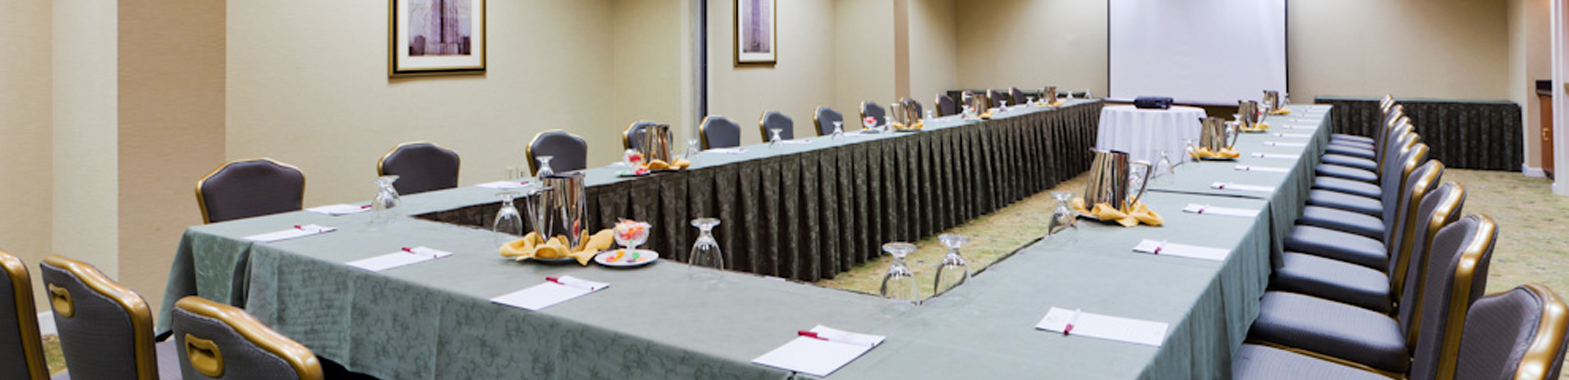 Crowne Plaza Dulles Airport Hotel Meeting Services